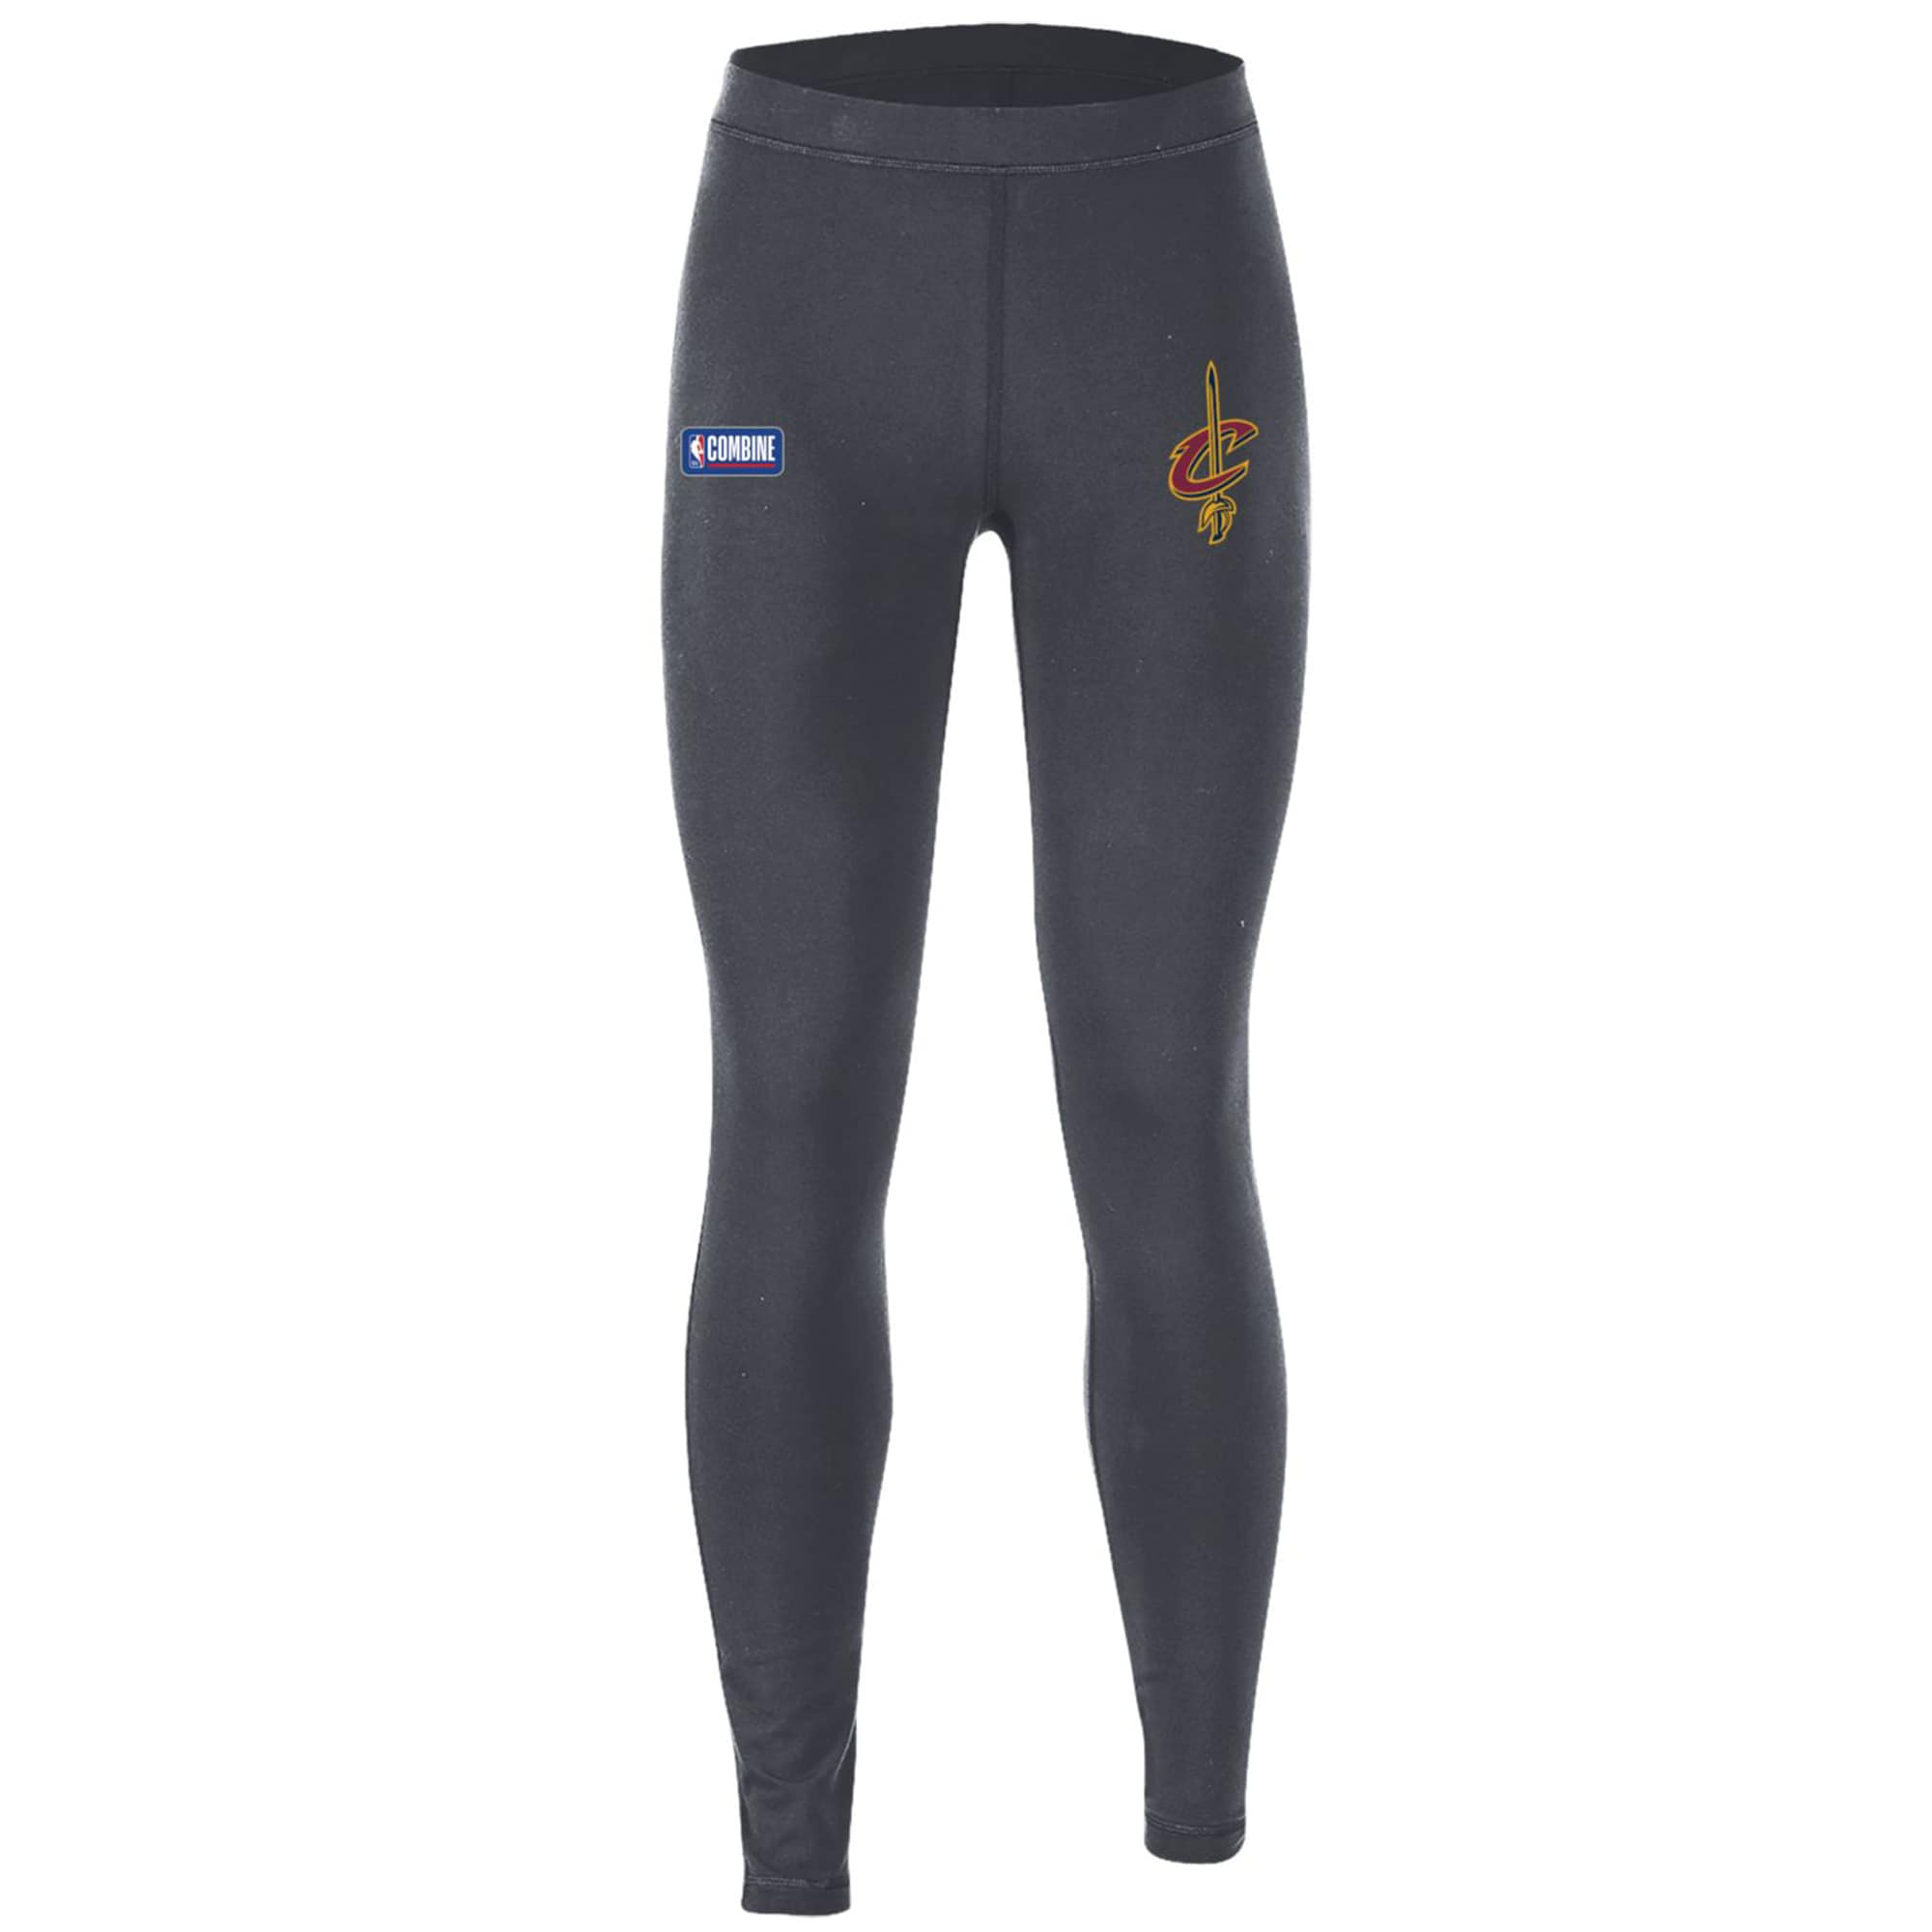 Cleveland Cavaliers Under Armour Women's Combine Authentic Favorites Performance Leggings - Heathered Charcoal